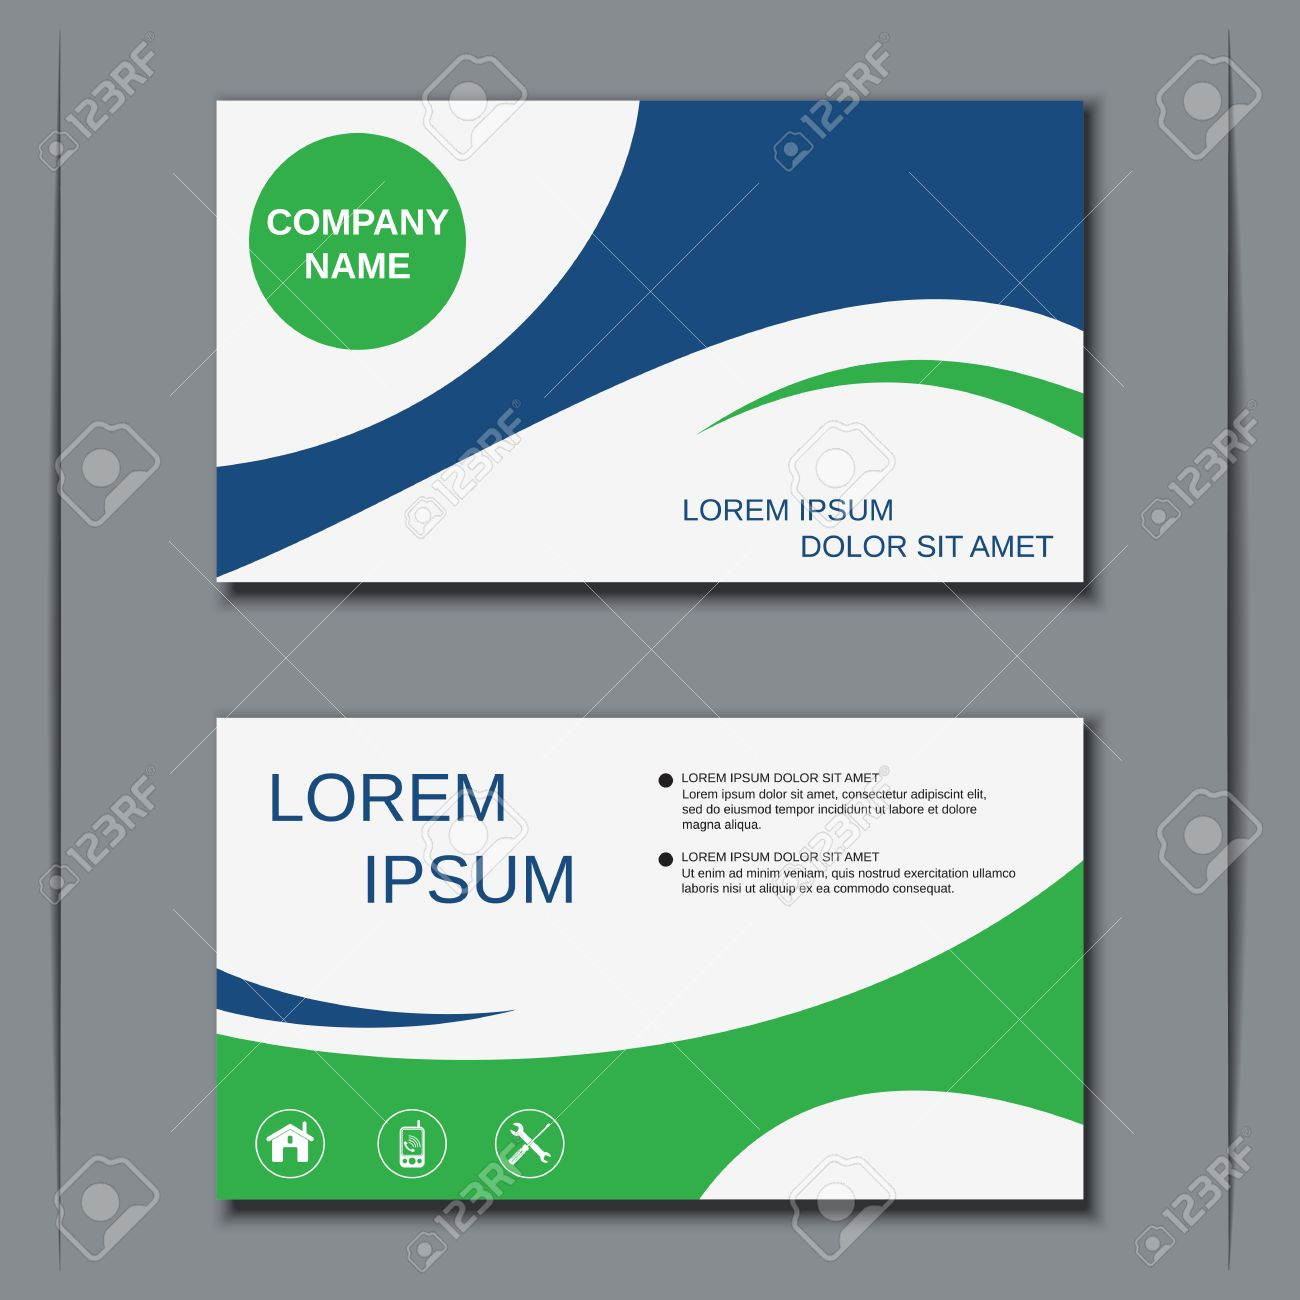 Modern Business Visiting Card Design Template Royalty Free Cliparts